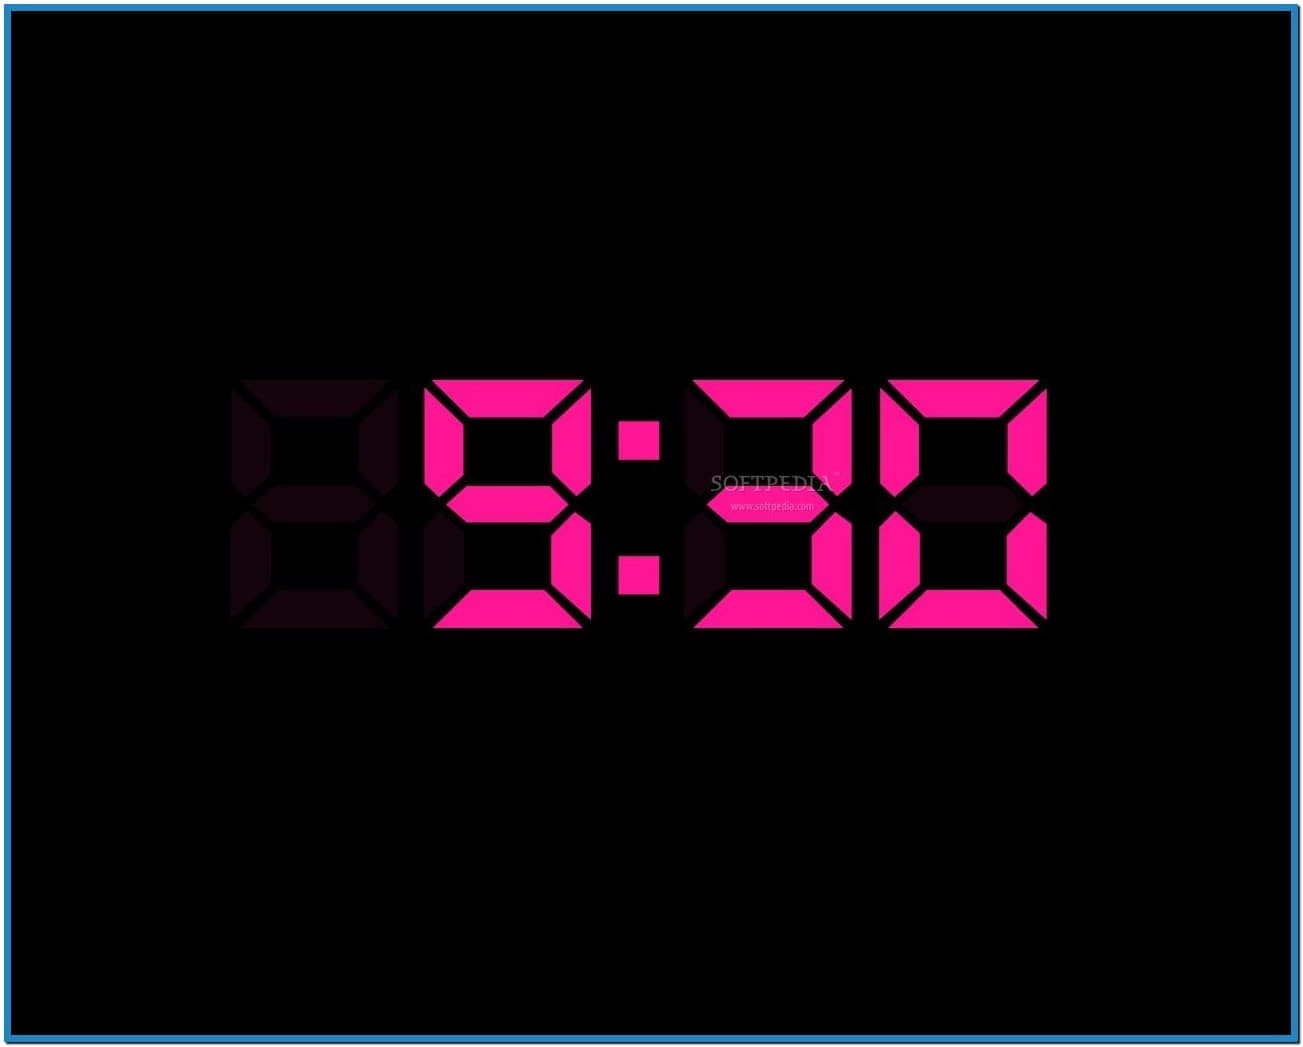 Digital clock screensaver for desktop   Download 1303x1047